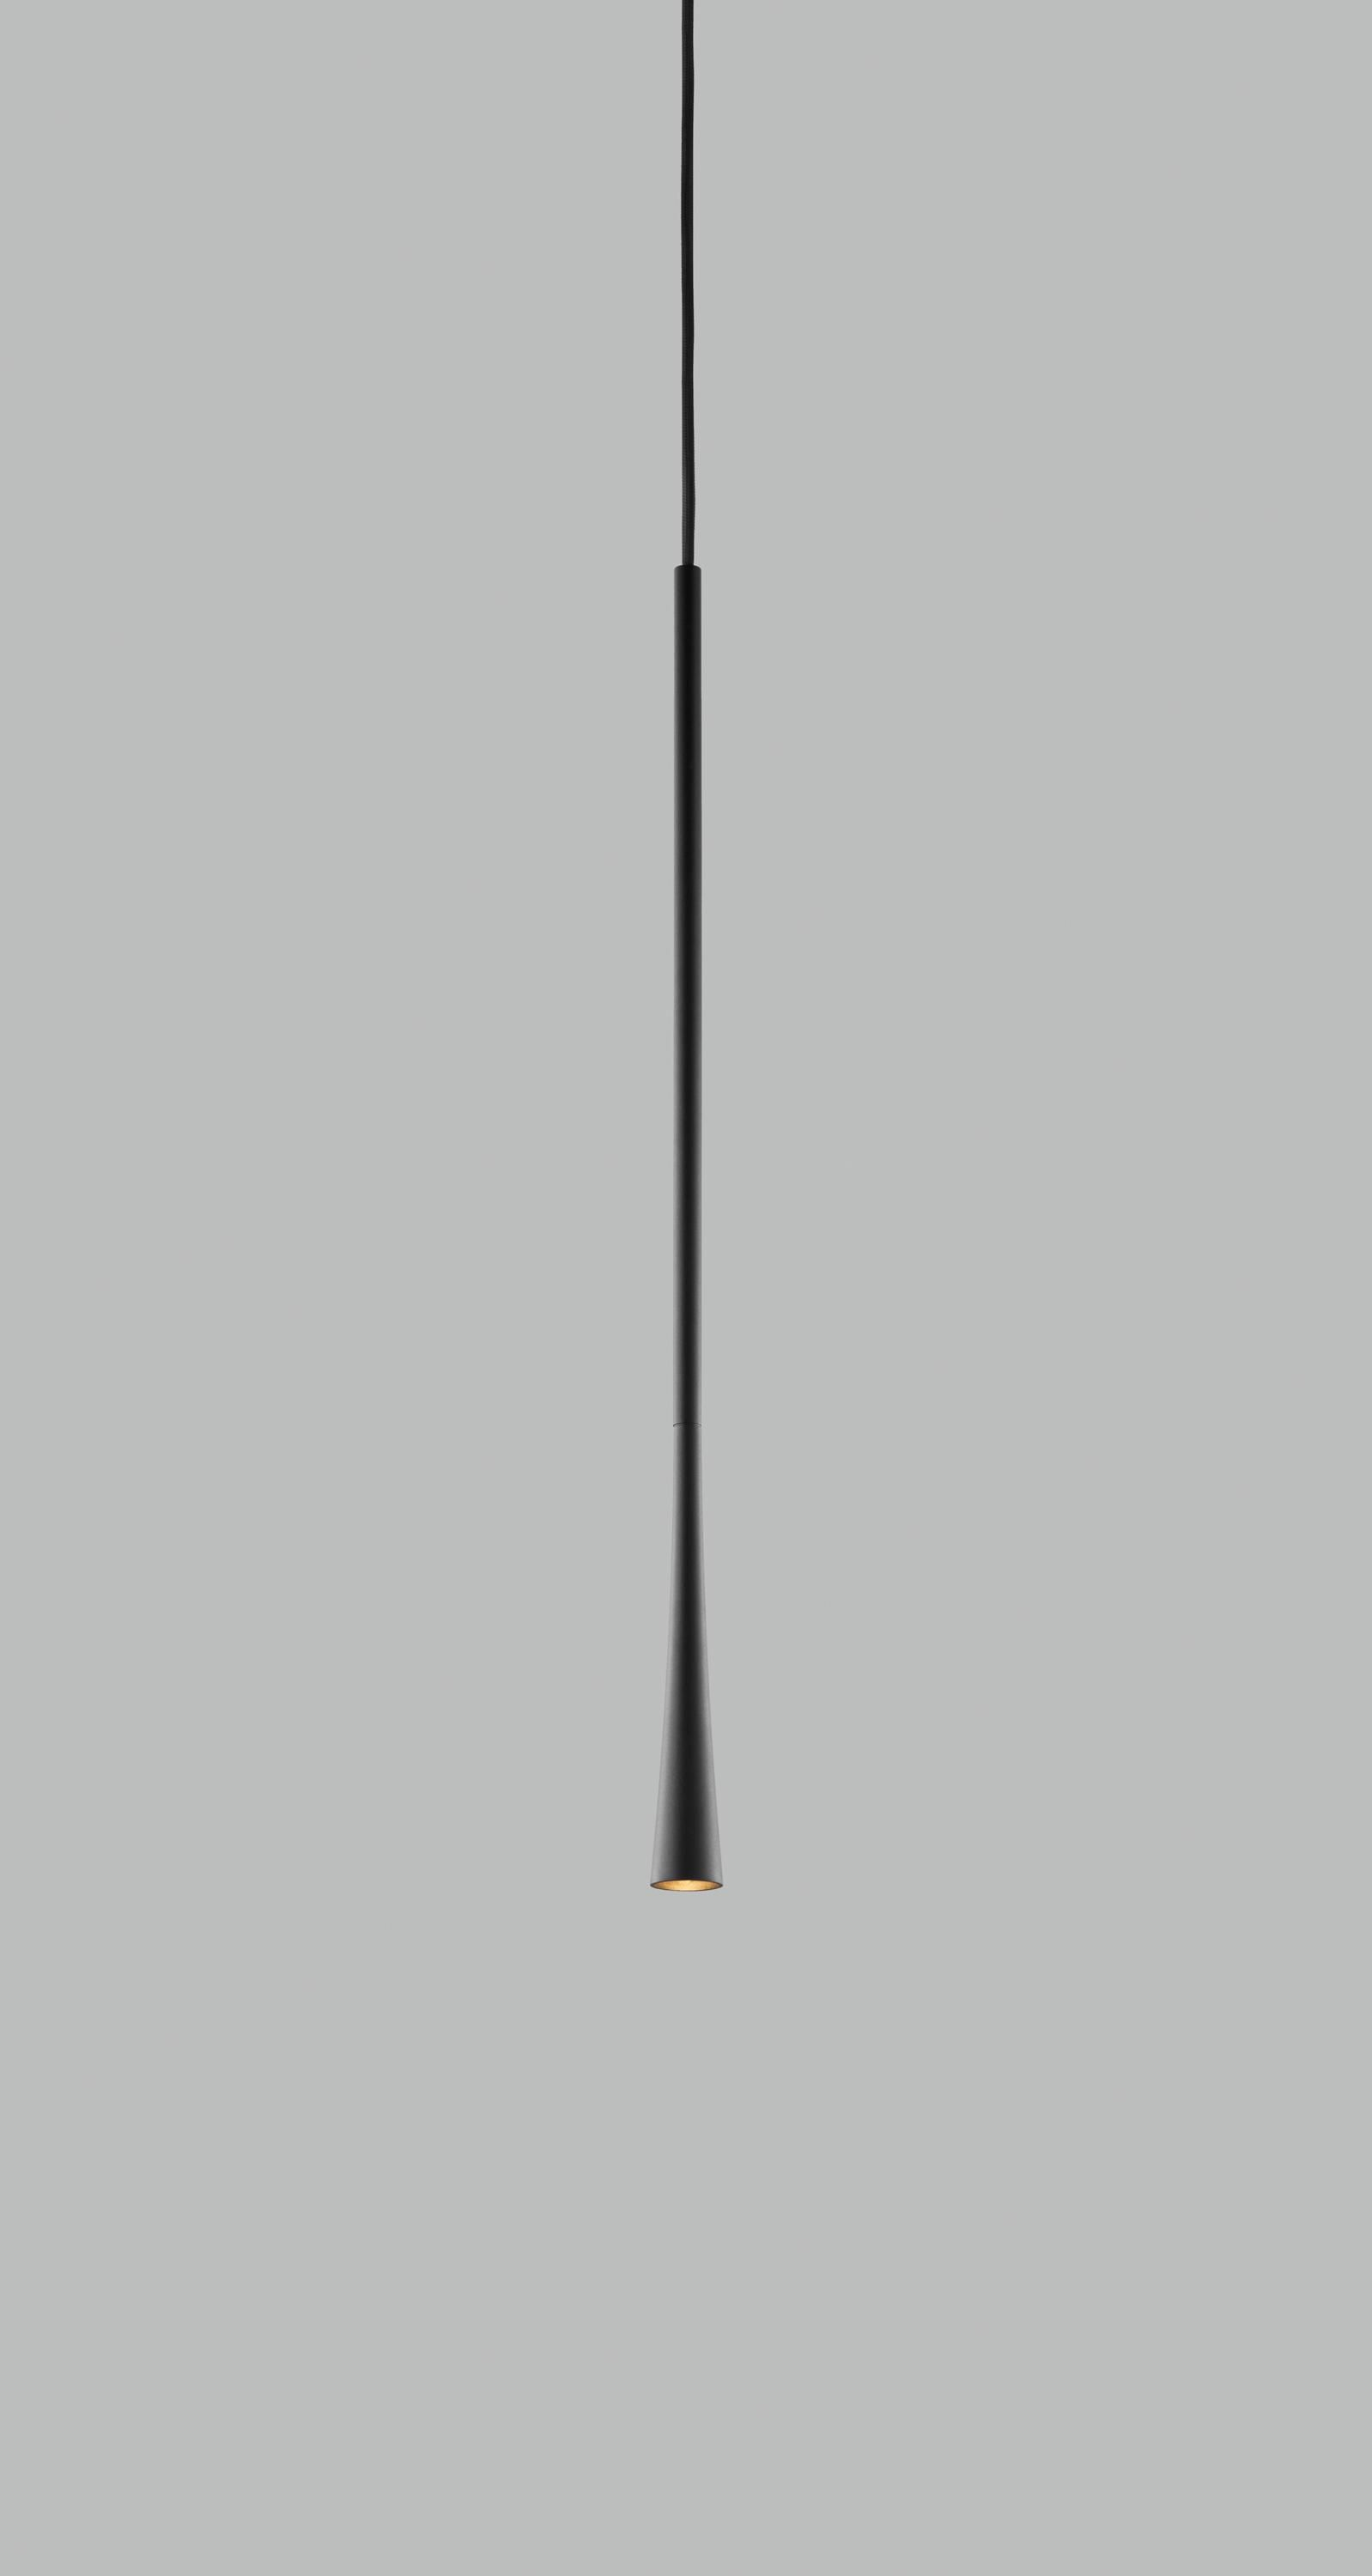 Drop Lighting Exposed Ceiling Drop S1 By Lightpoint Suspended Lights Architonic Dr Drop Pendant Lights Aluminum Pendant Lighting Kitchen Ceiling Pendant Lights